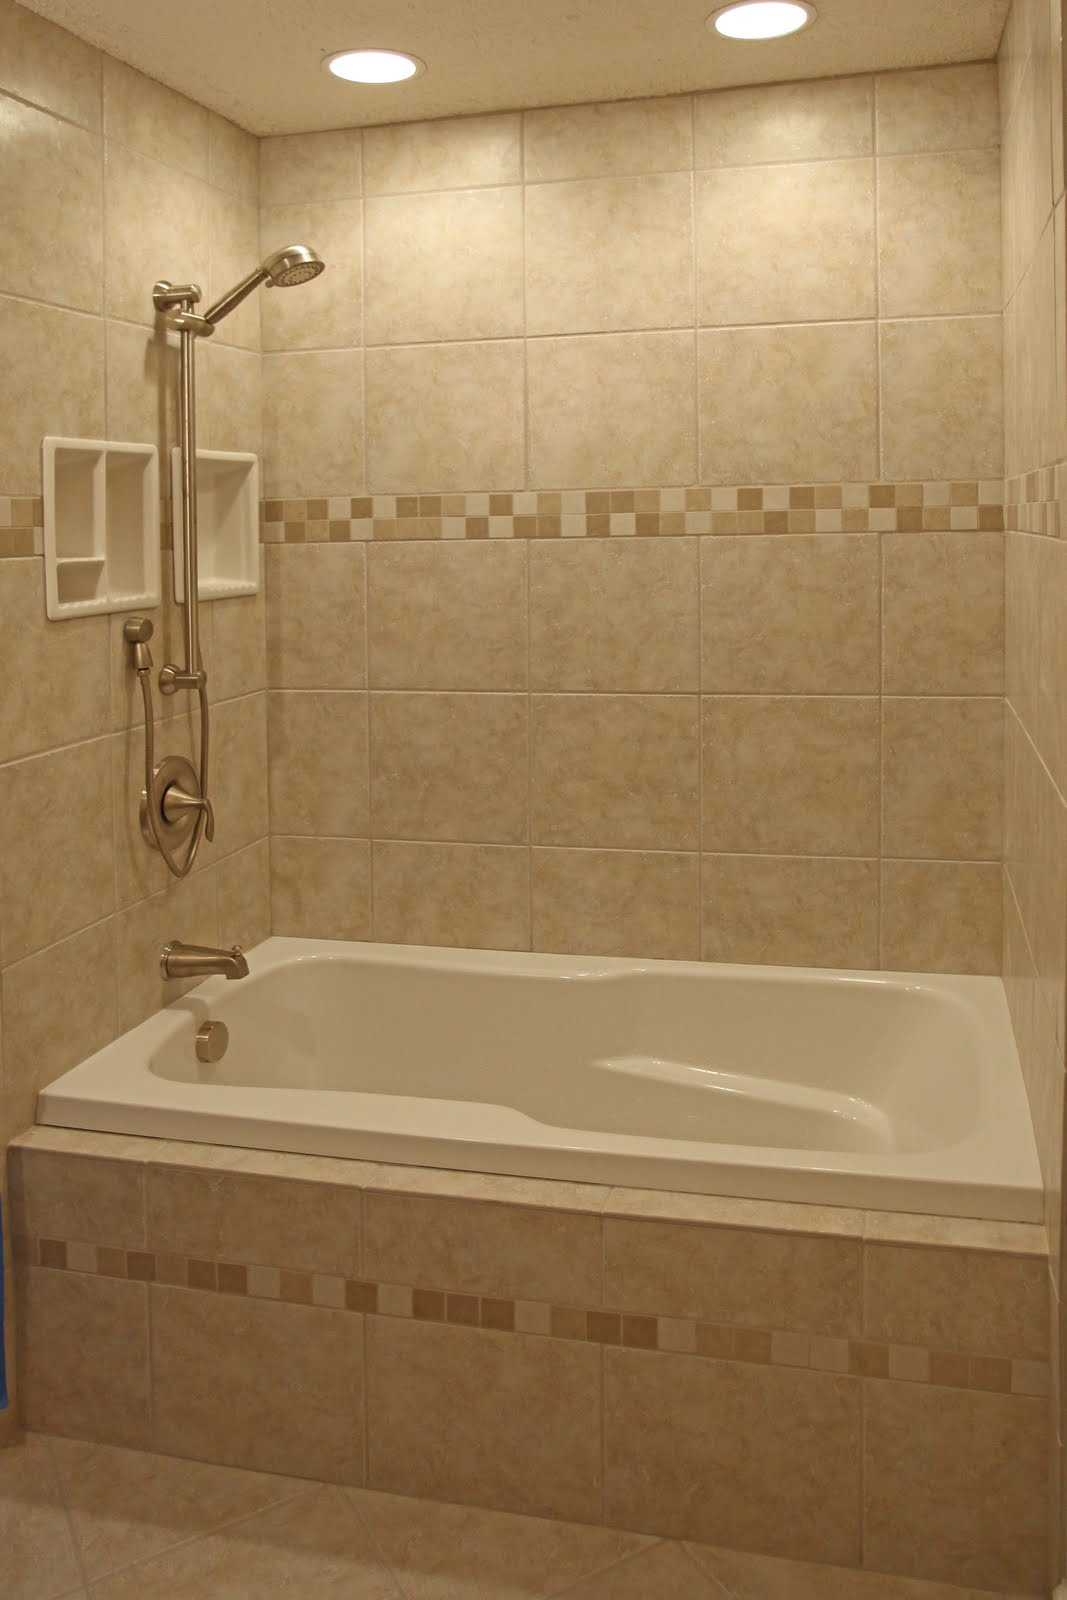 Bathroom remodeling design ideas tile shower niches Bathroom shower tile designs